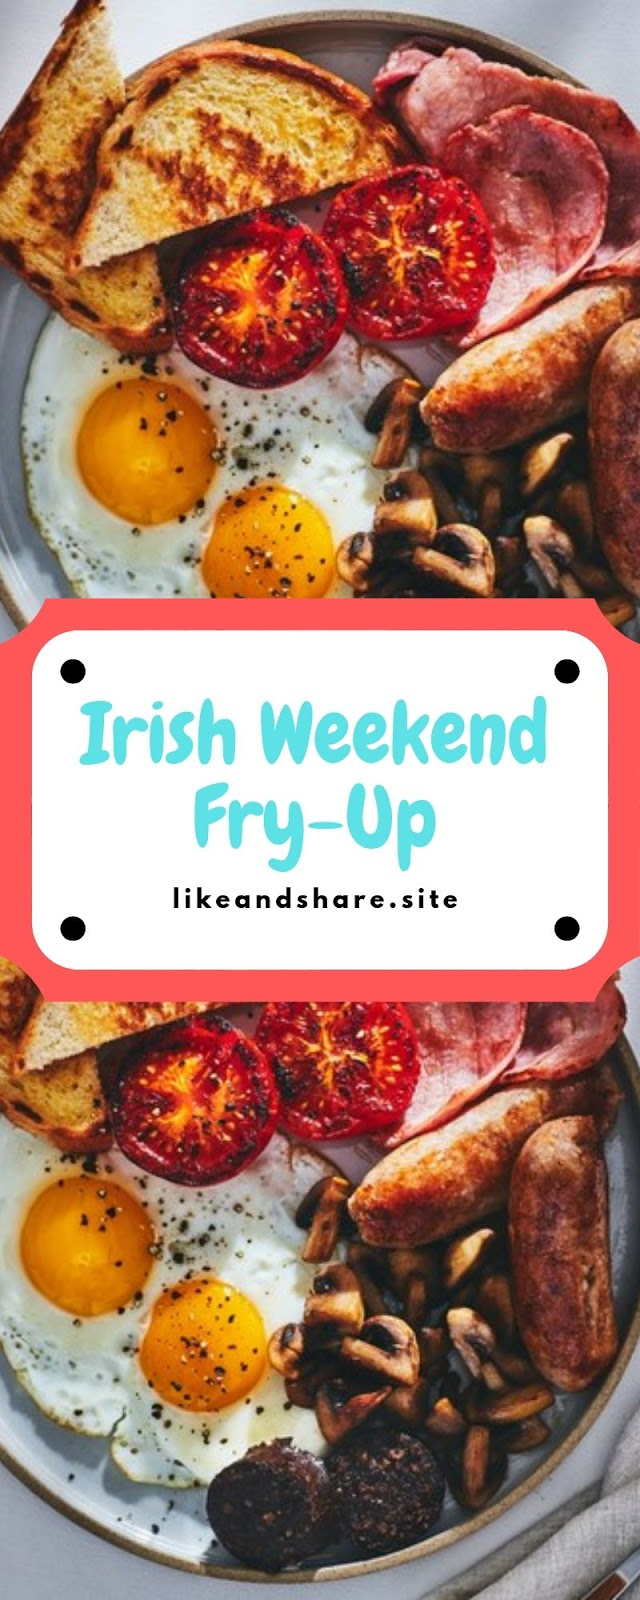 Irish Weekend Fry-Up, Delicious Irish Weekend Fry-Up